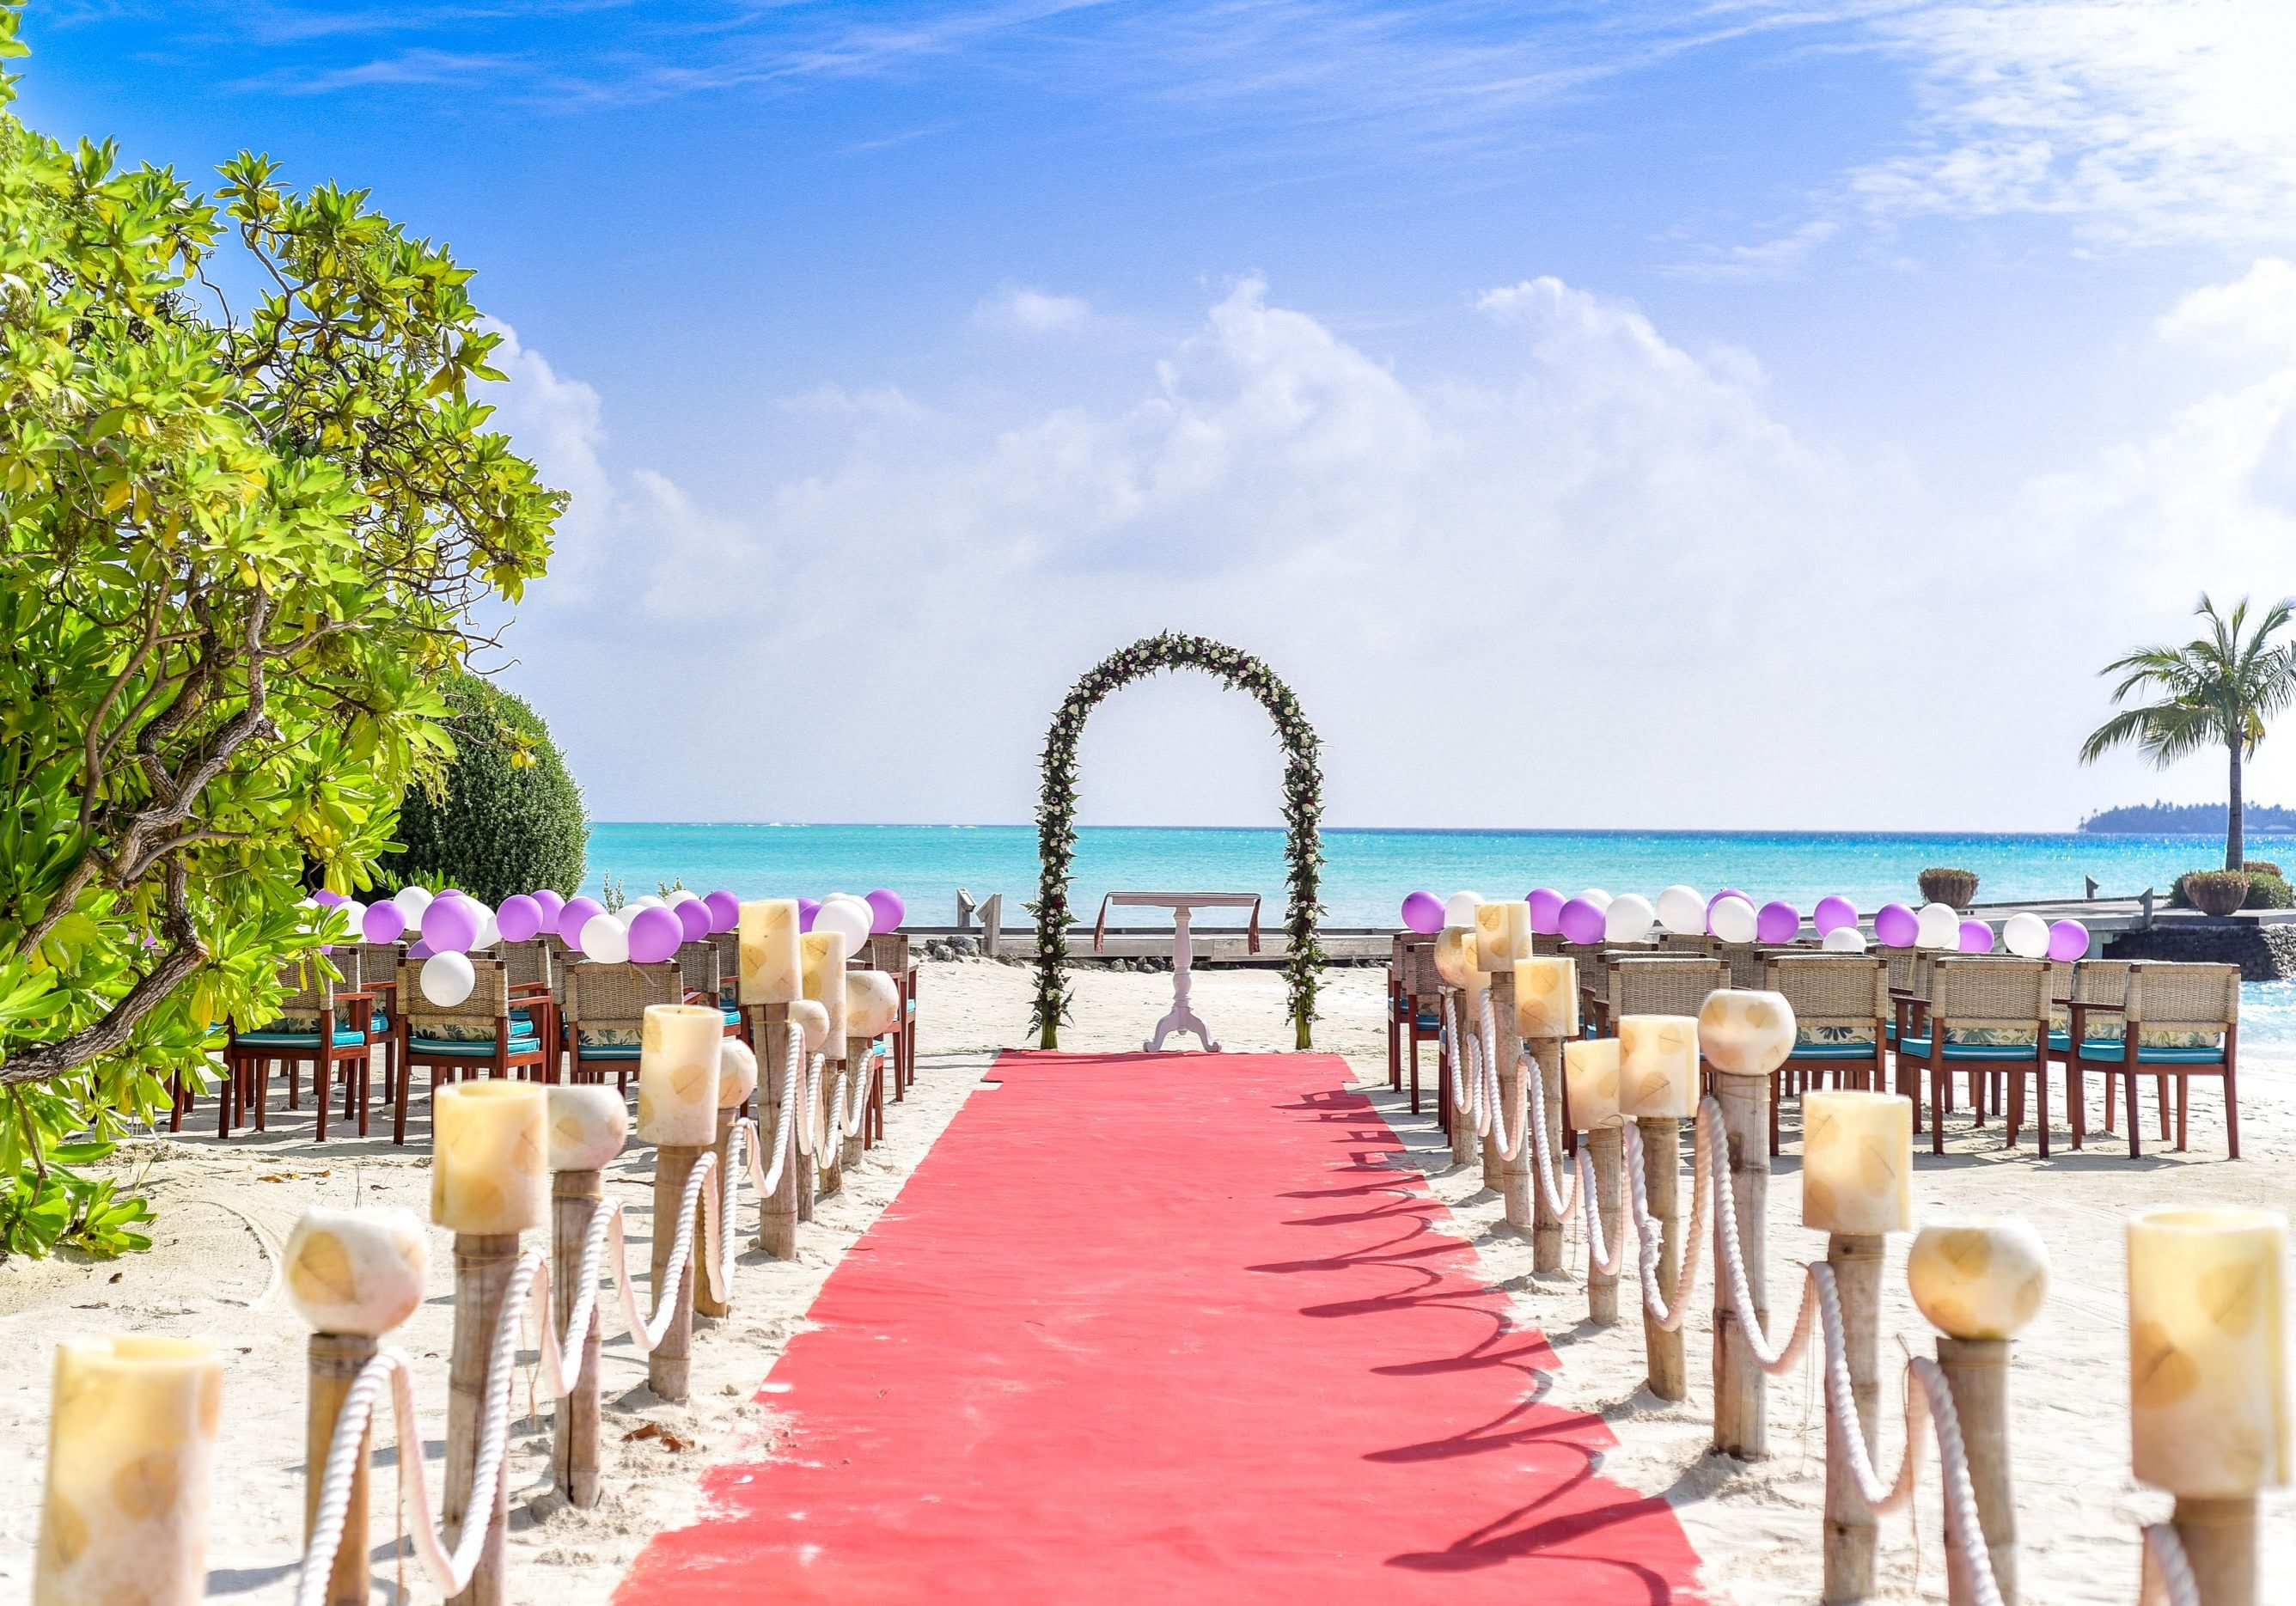 beach-wedding-event-under-white-clouds-and-clear-sky-during-169211